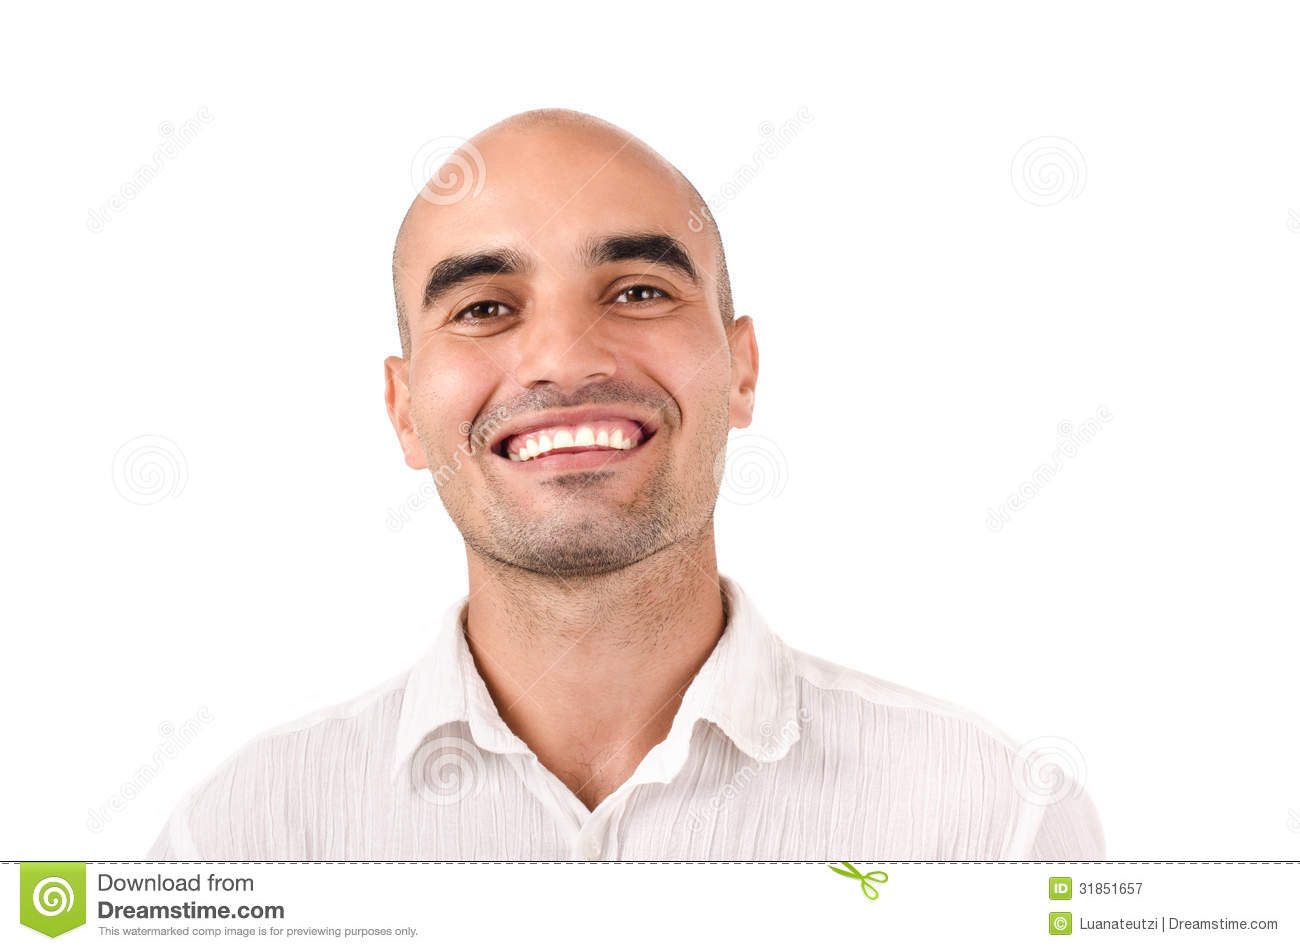 Portrait Of A Man Smiling Royalty Free Stock Photography Image 31851657